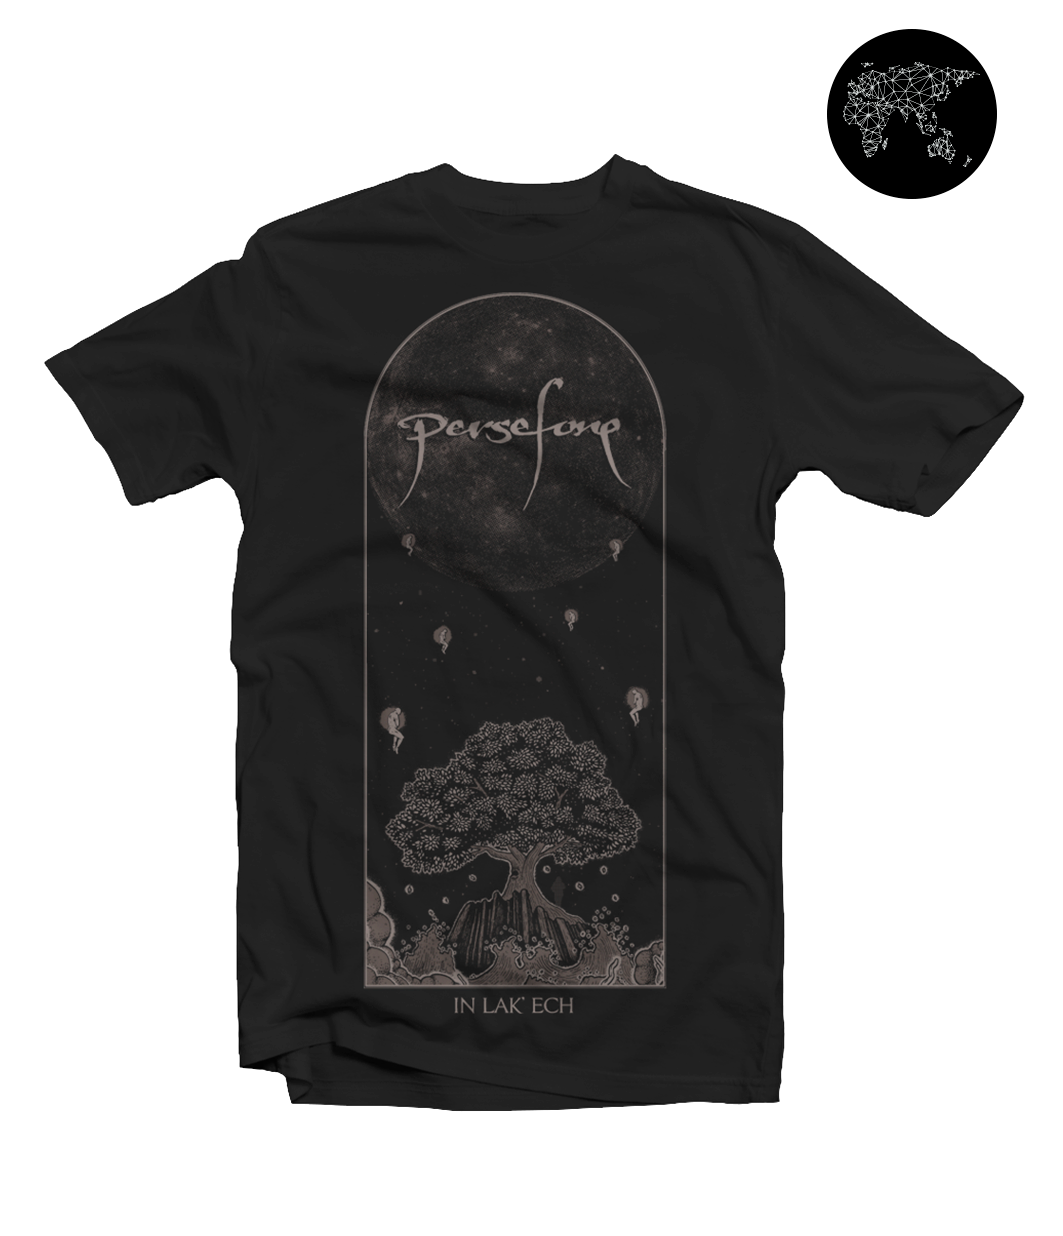 Persefone - InLakEch T-shirt Europe